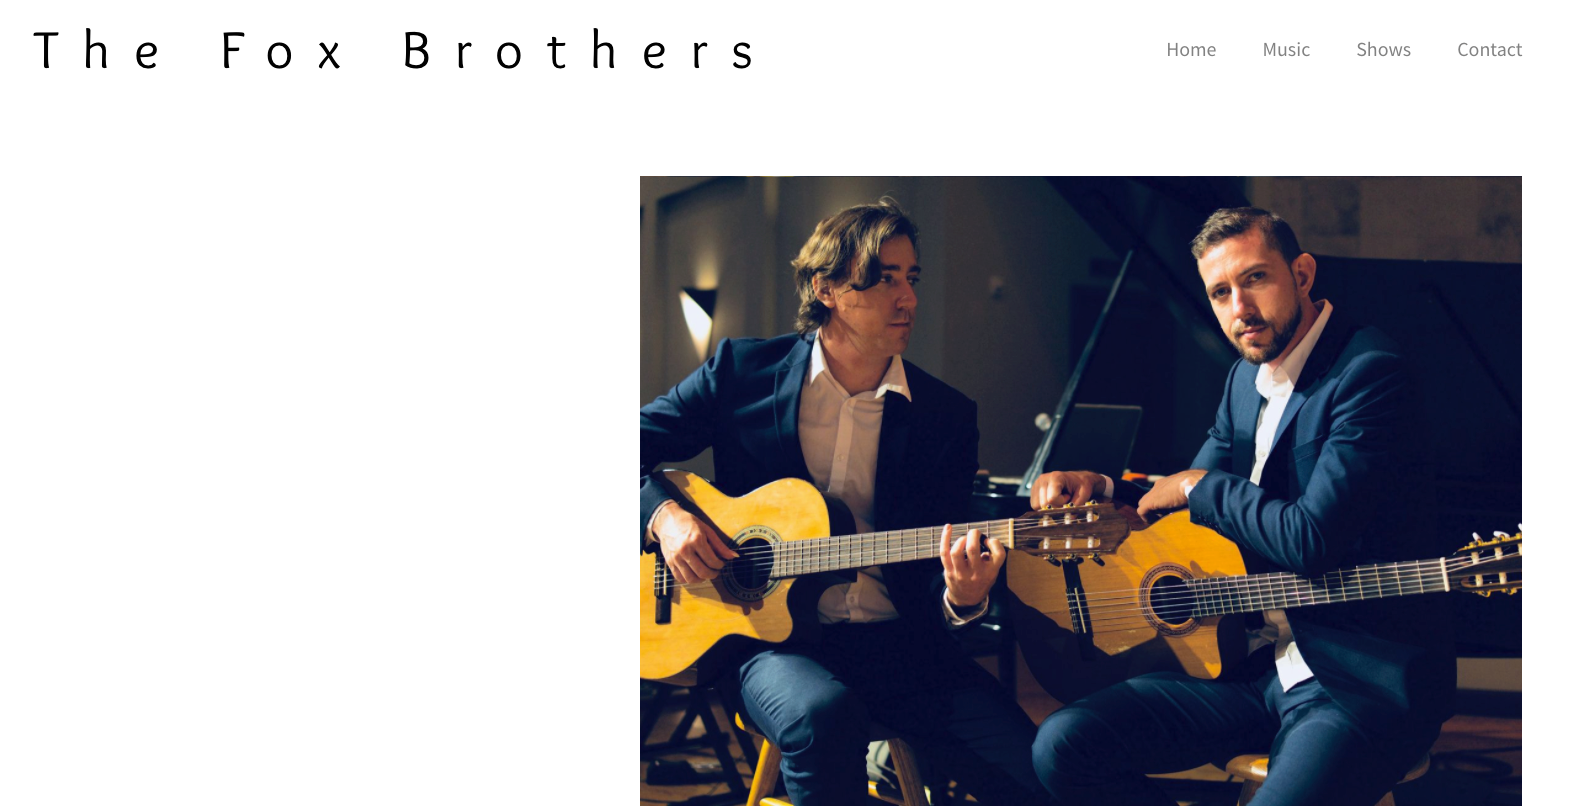 Guitarist website design - great header image